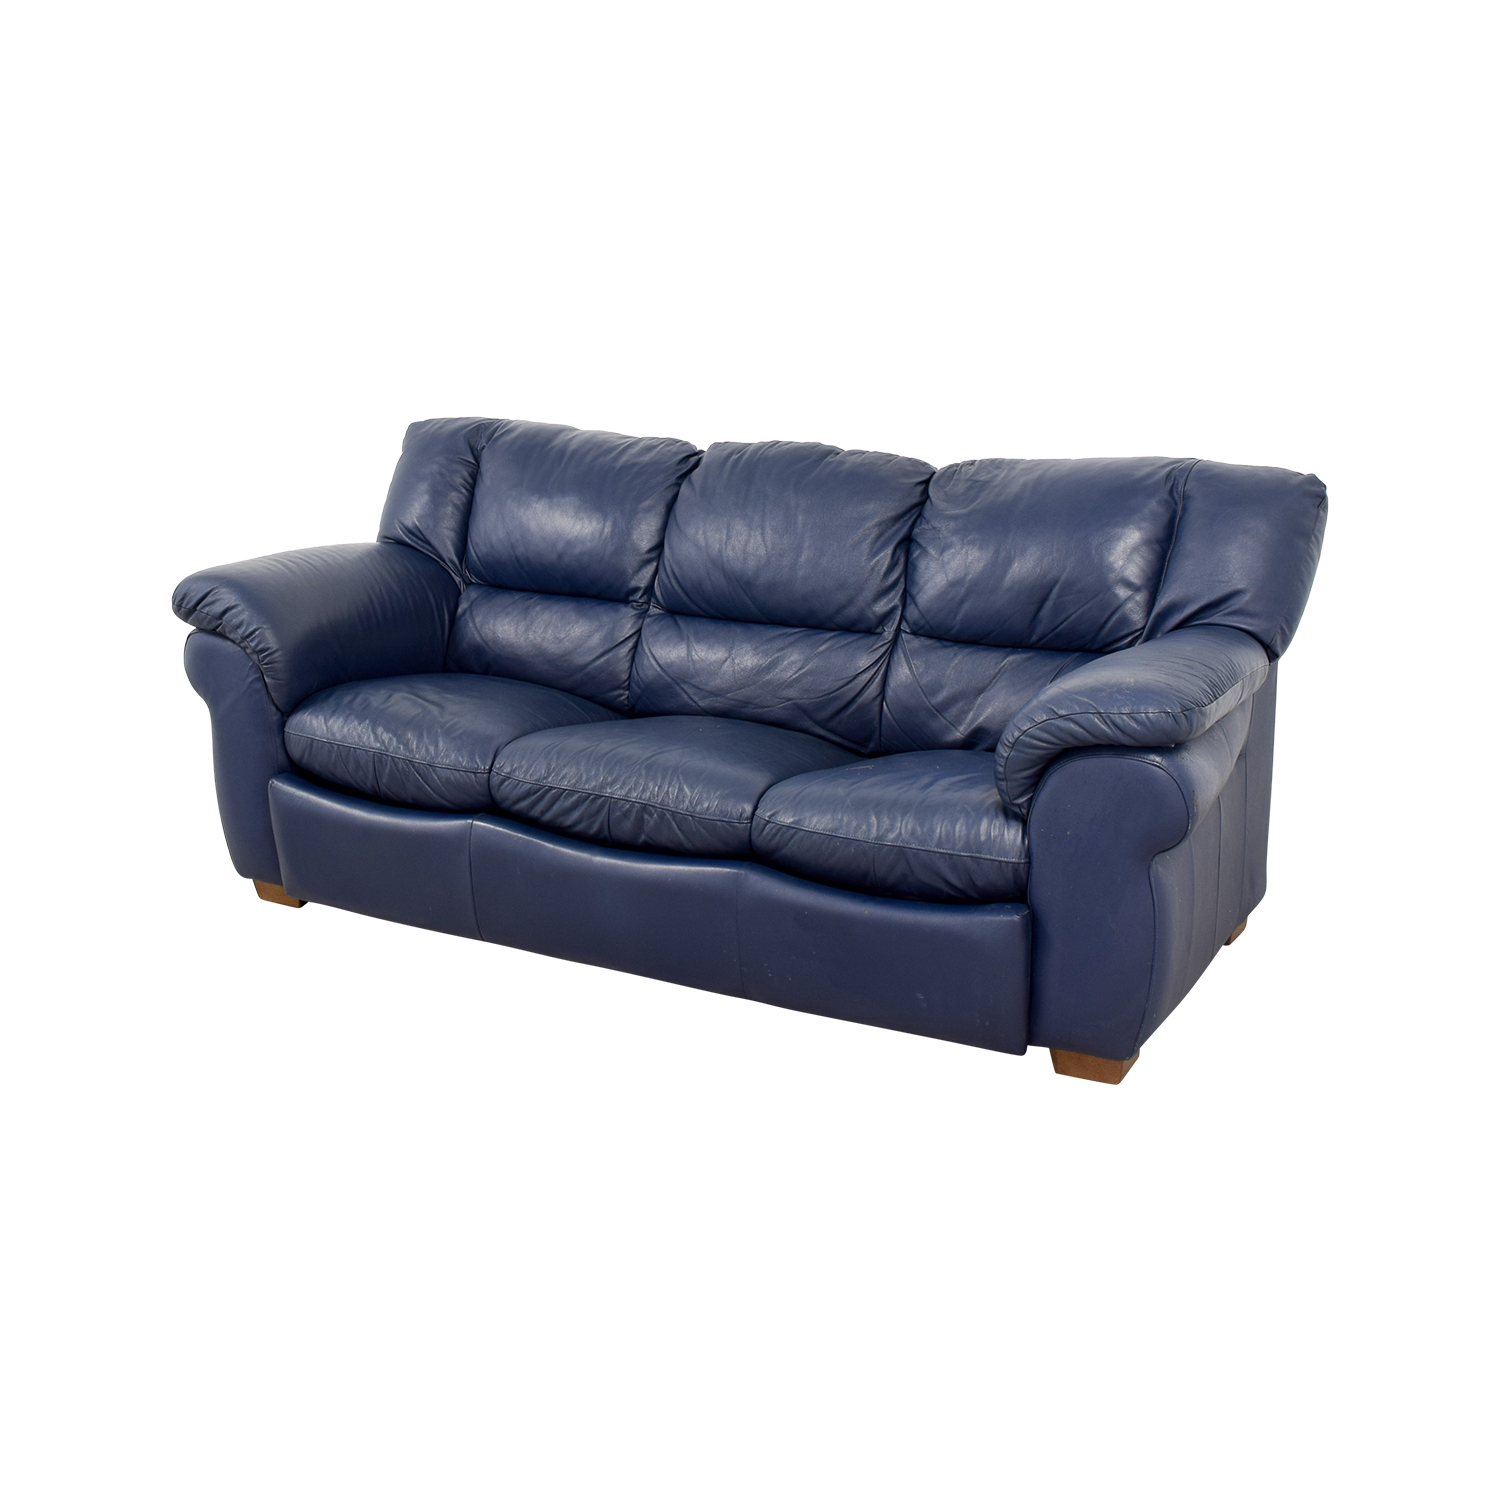 blue leather sofas white sofa for office 86 off macy 39s navy three cushion